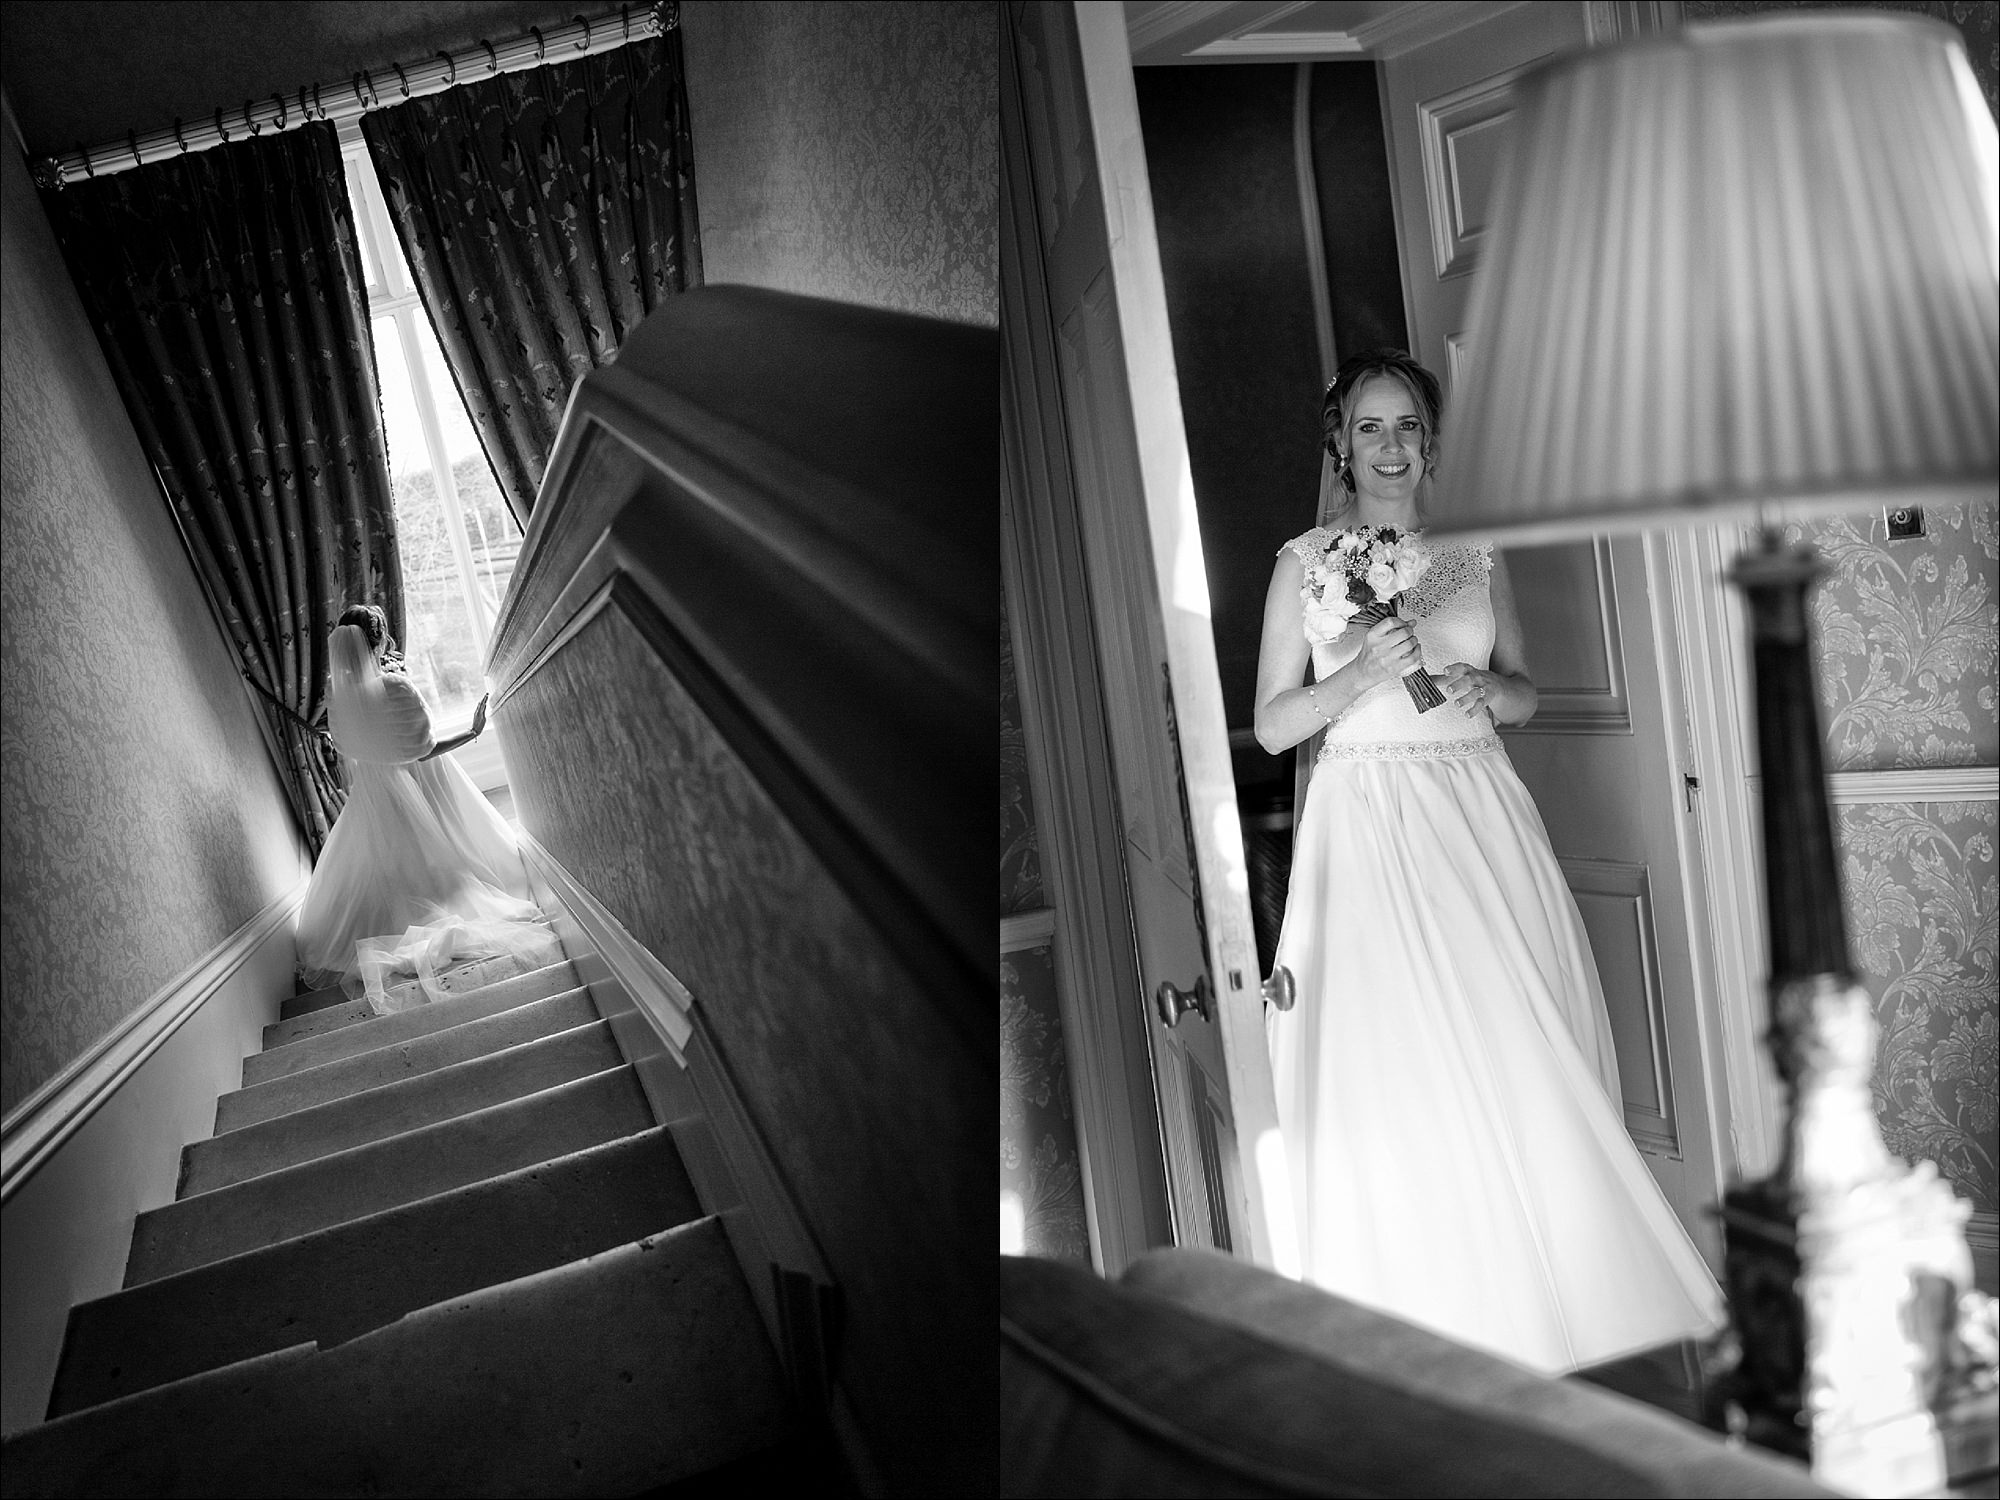 dublin wedding photographer david duignan photography tankardstown weddings slane rathfeigh church ireland 0012